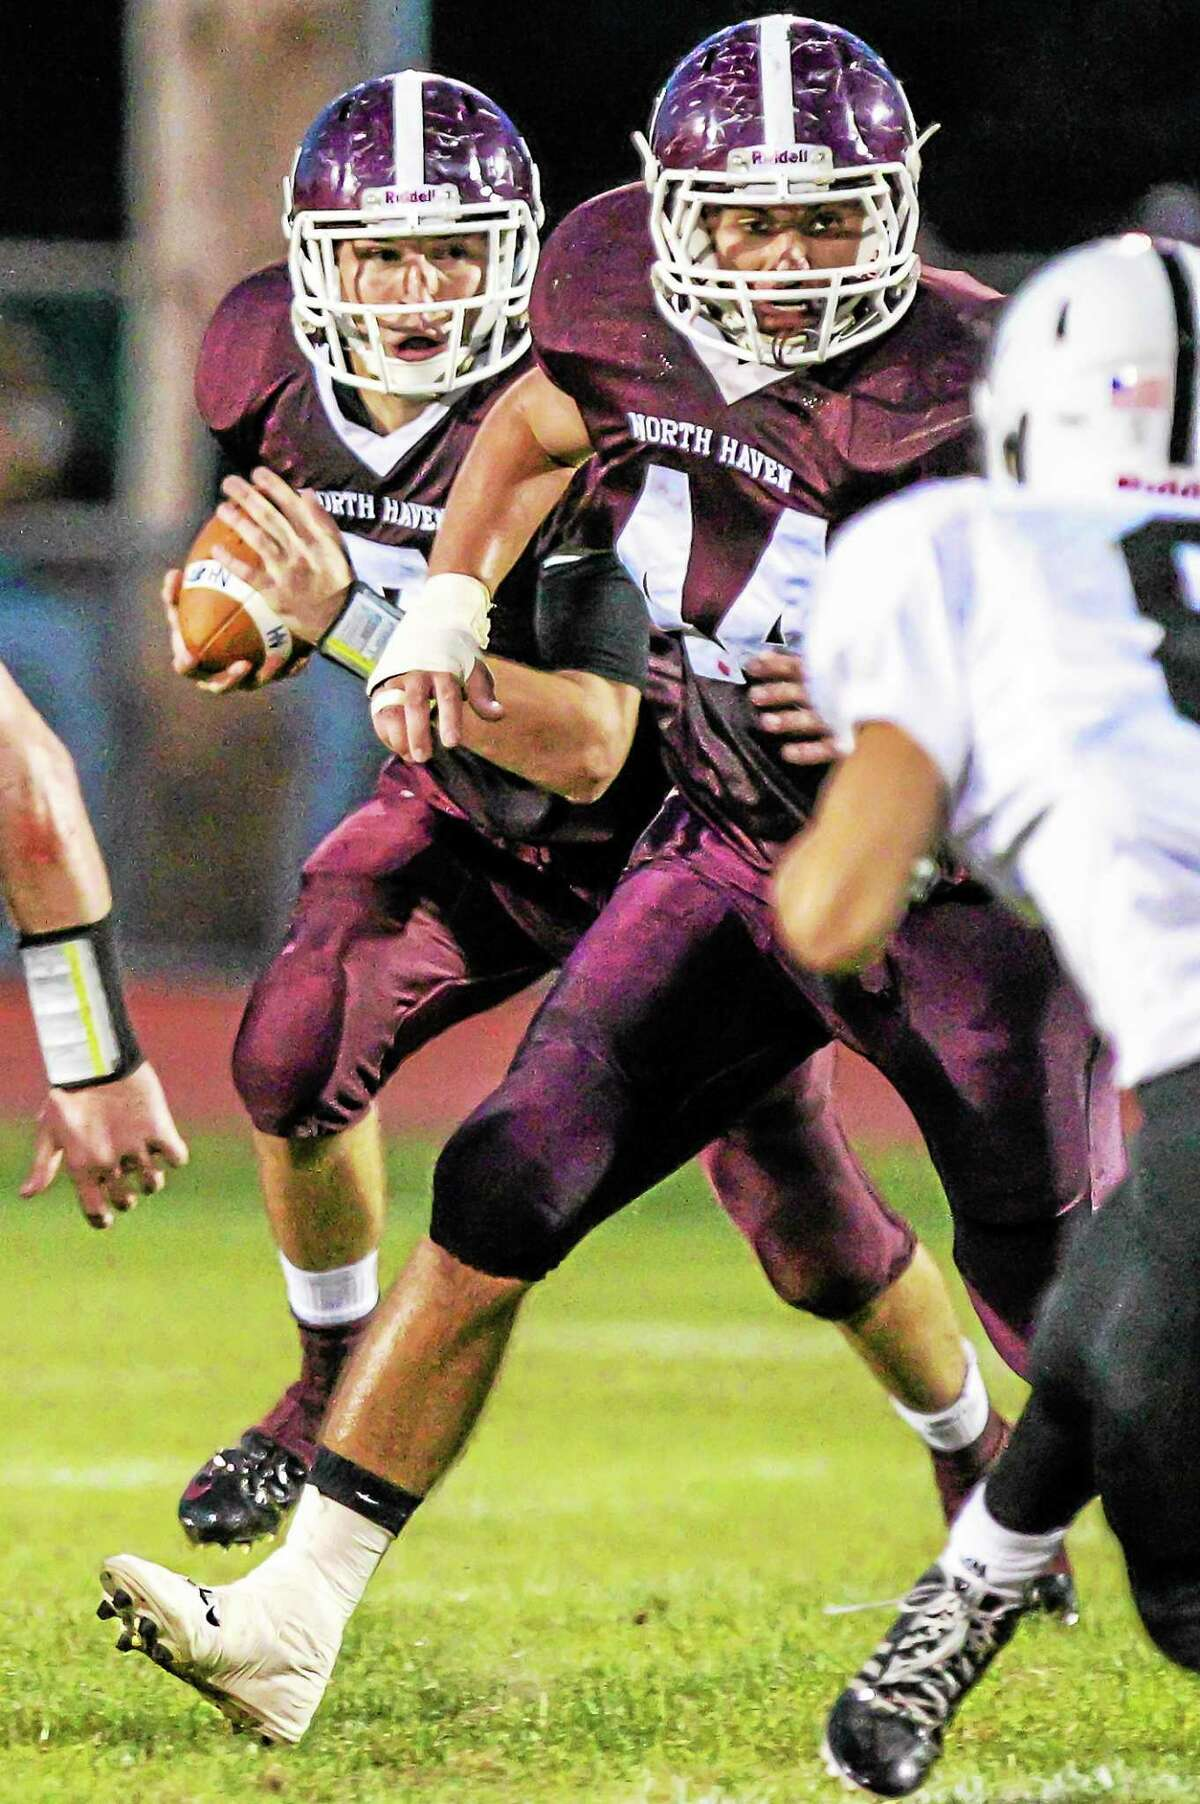 North Haven quarterback Mike Halloran gets blocking from Patrick Mikos(44) en route to a big gain in Friday's 42-28 victory over No. 2 Xavier